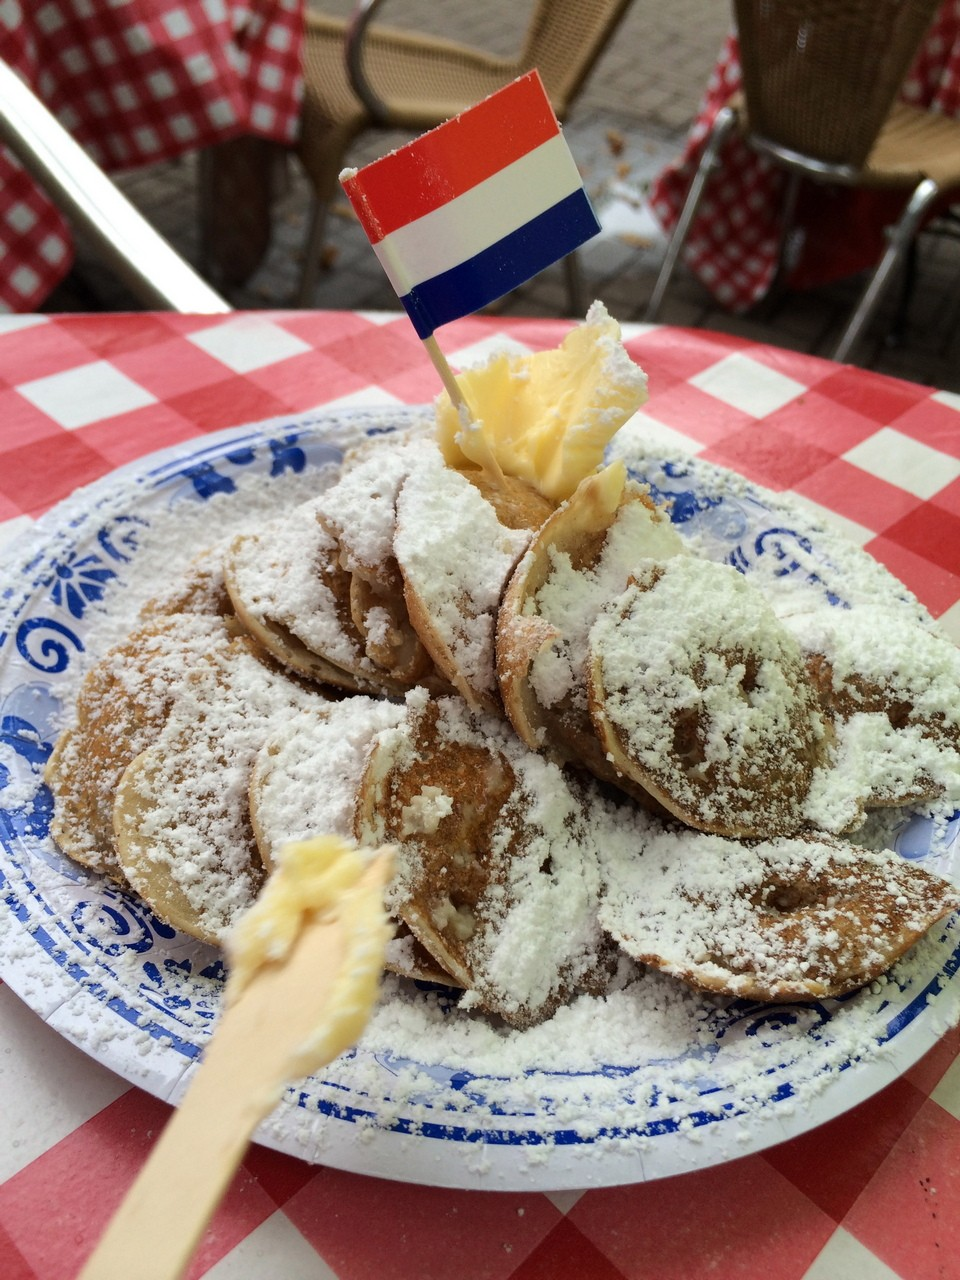 Poffertjes amsterdam (1),amsterdam blog,amsterdam travel blog,amsterdam travel guide blog,amsterdam city guide,